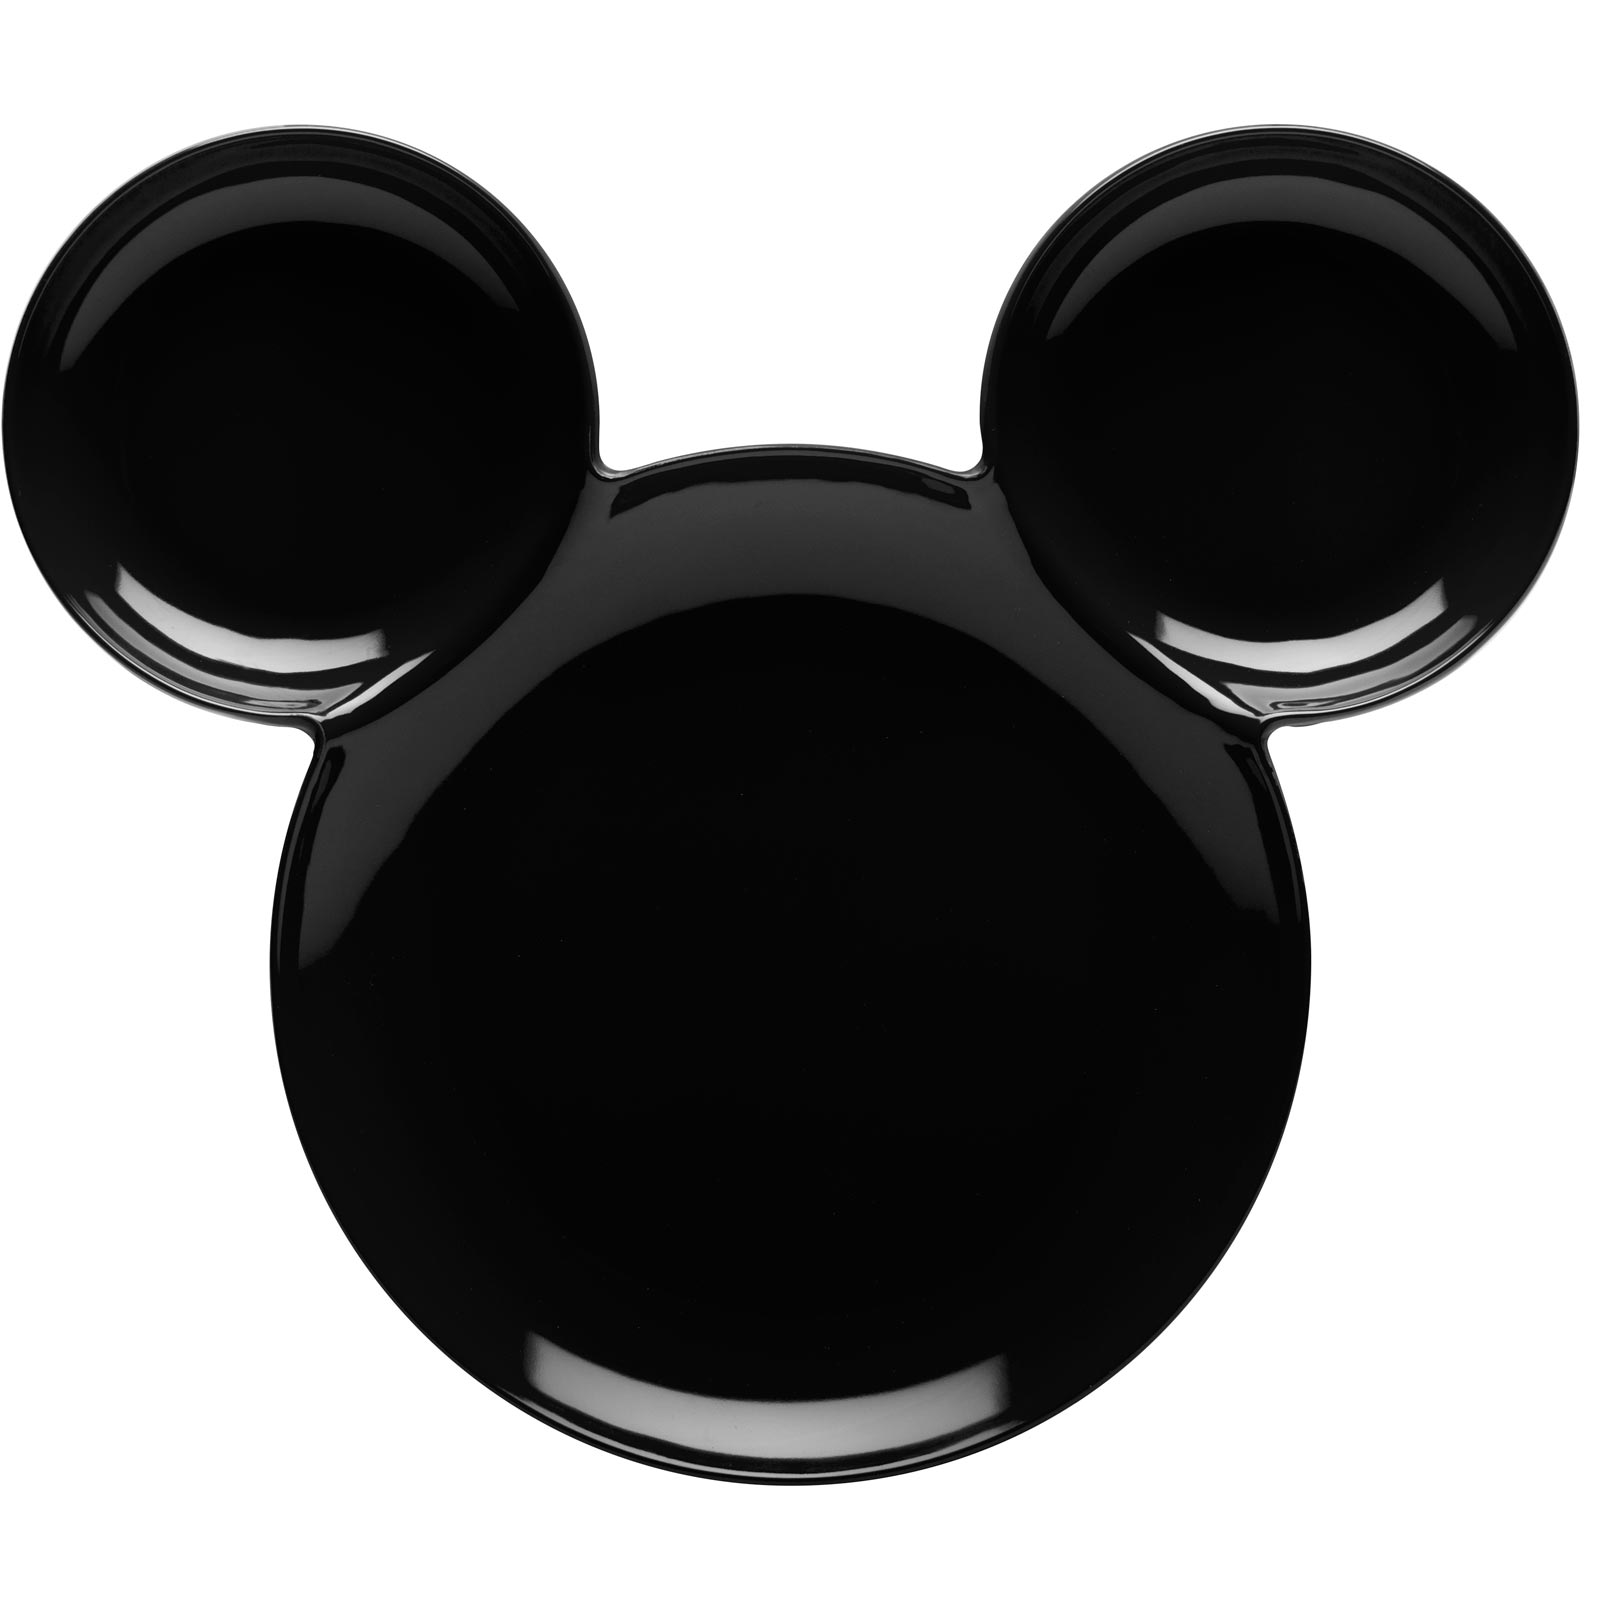 mickey mouse pictures cute mickey mouse iphone wallpaper 71 images pictures mickey mouse